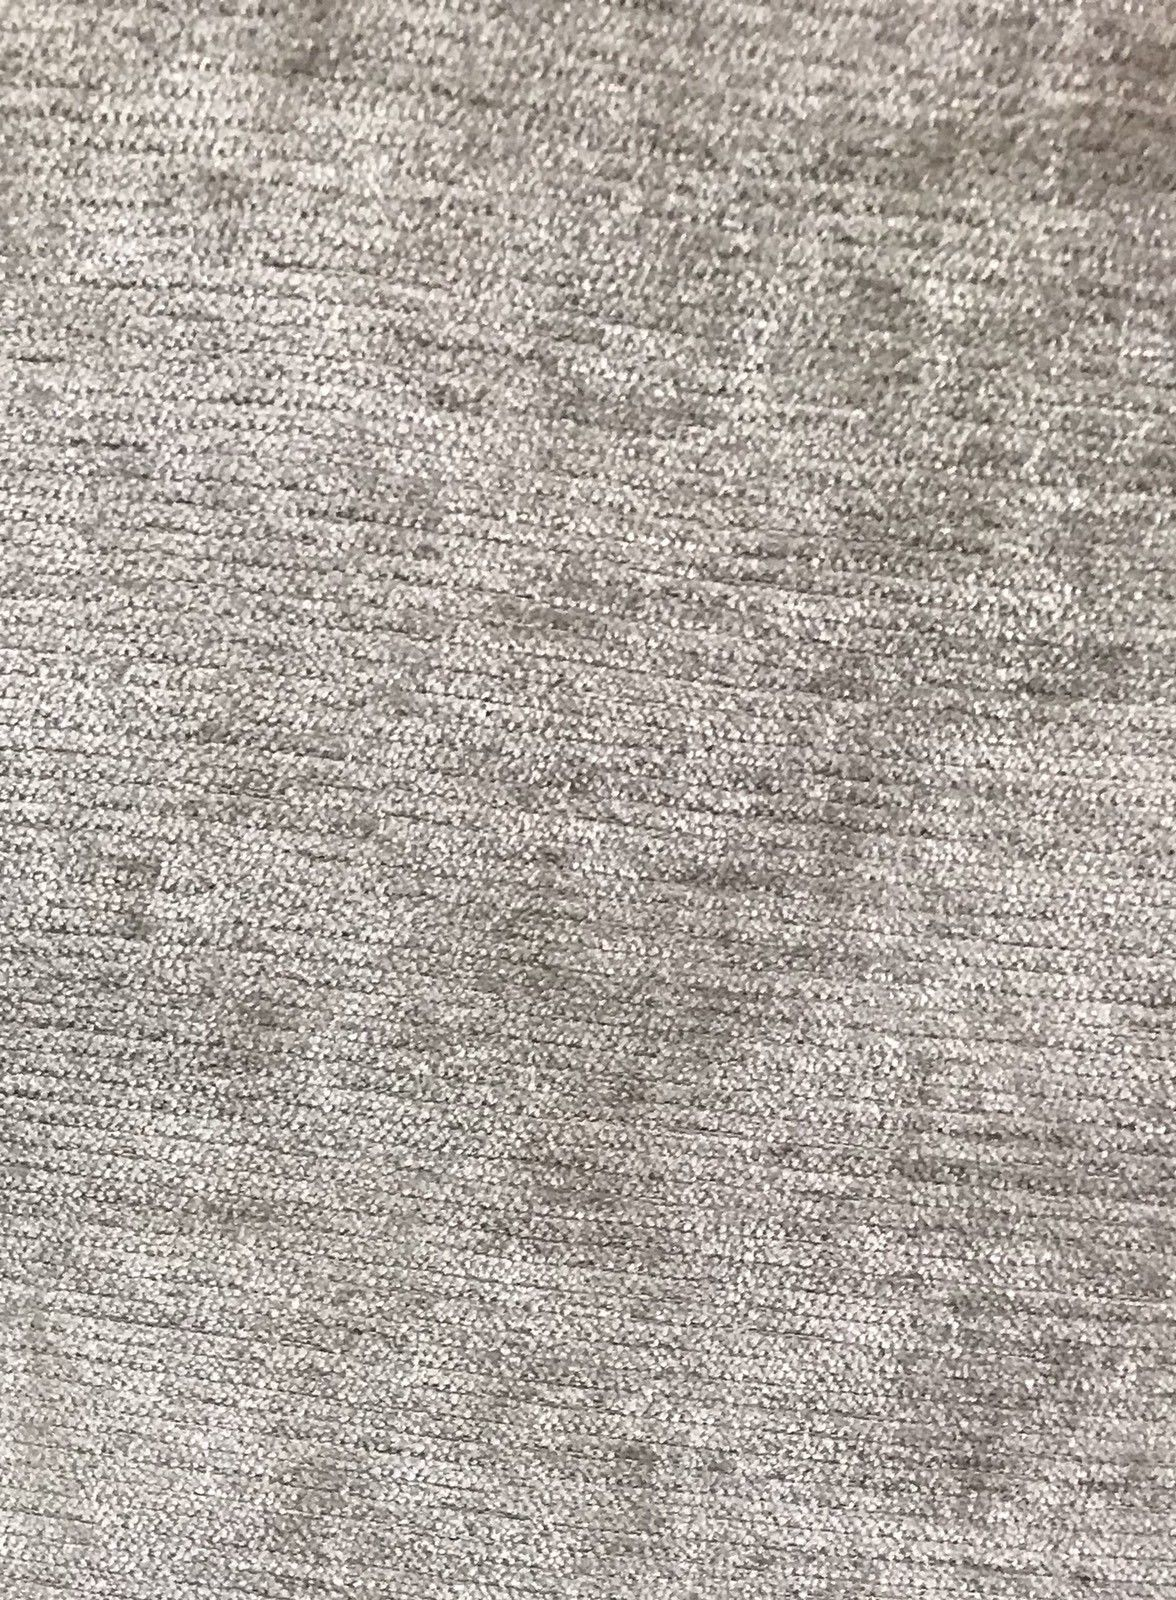 Designer Velvet Chenille Fabric - Antique Silver Gray - Upholstery - Fancy Styles Fabric Pierre Frey Lee Jofa Brunschwig & Fils